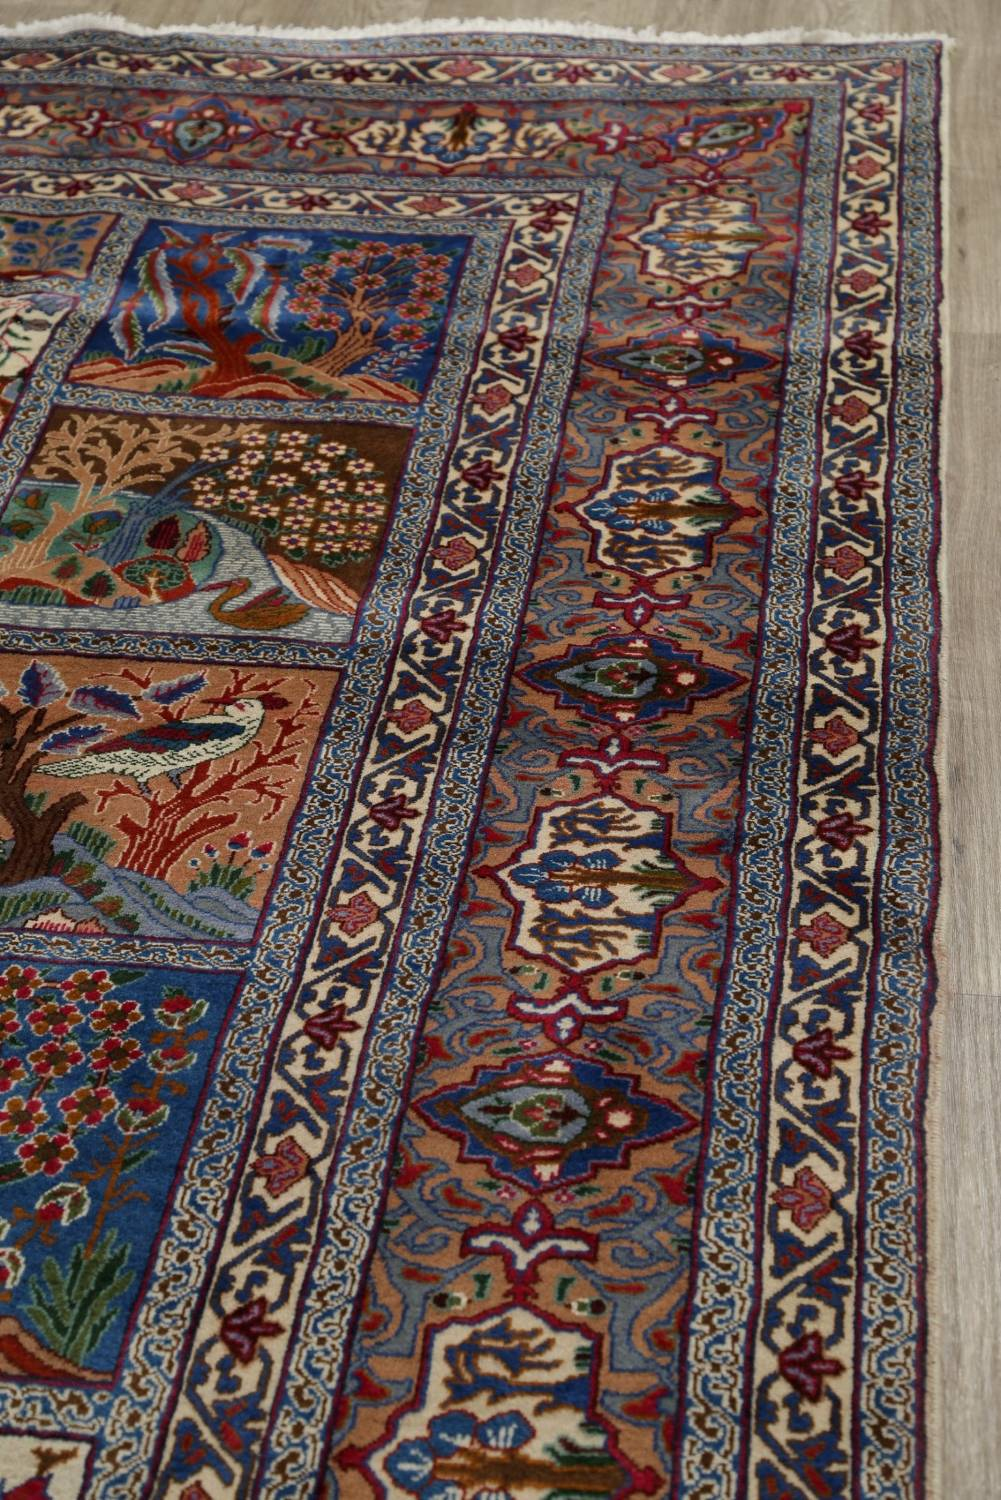 Hand Knotted 10x12 Wool Area Rug